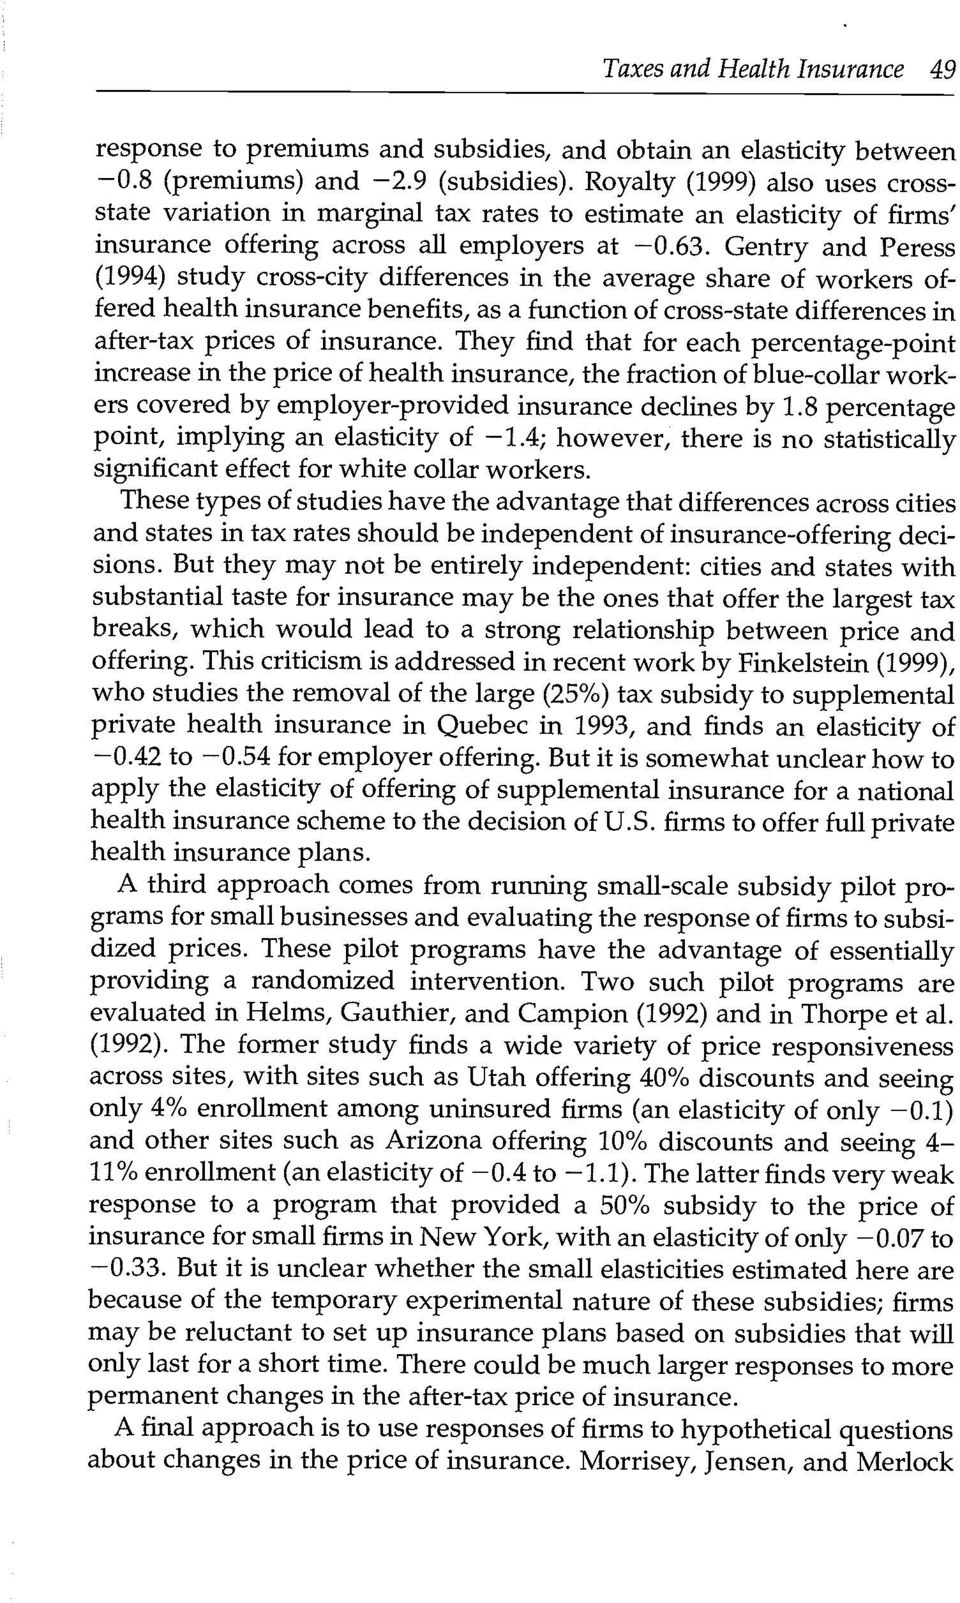 Gentry and Peress (1994) study cross-city differences in the average share of workers offered health insurance benefits, as a function of cross-state differences in after-tax prices of insurance.